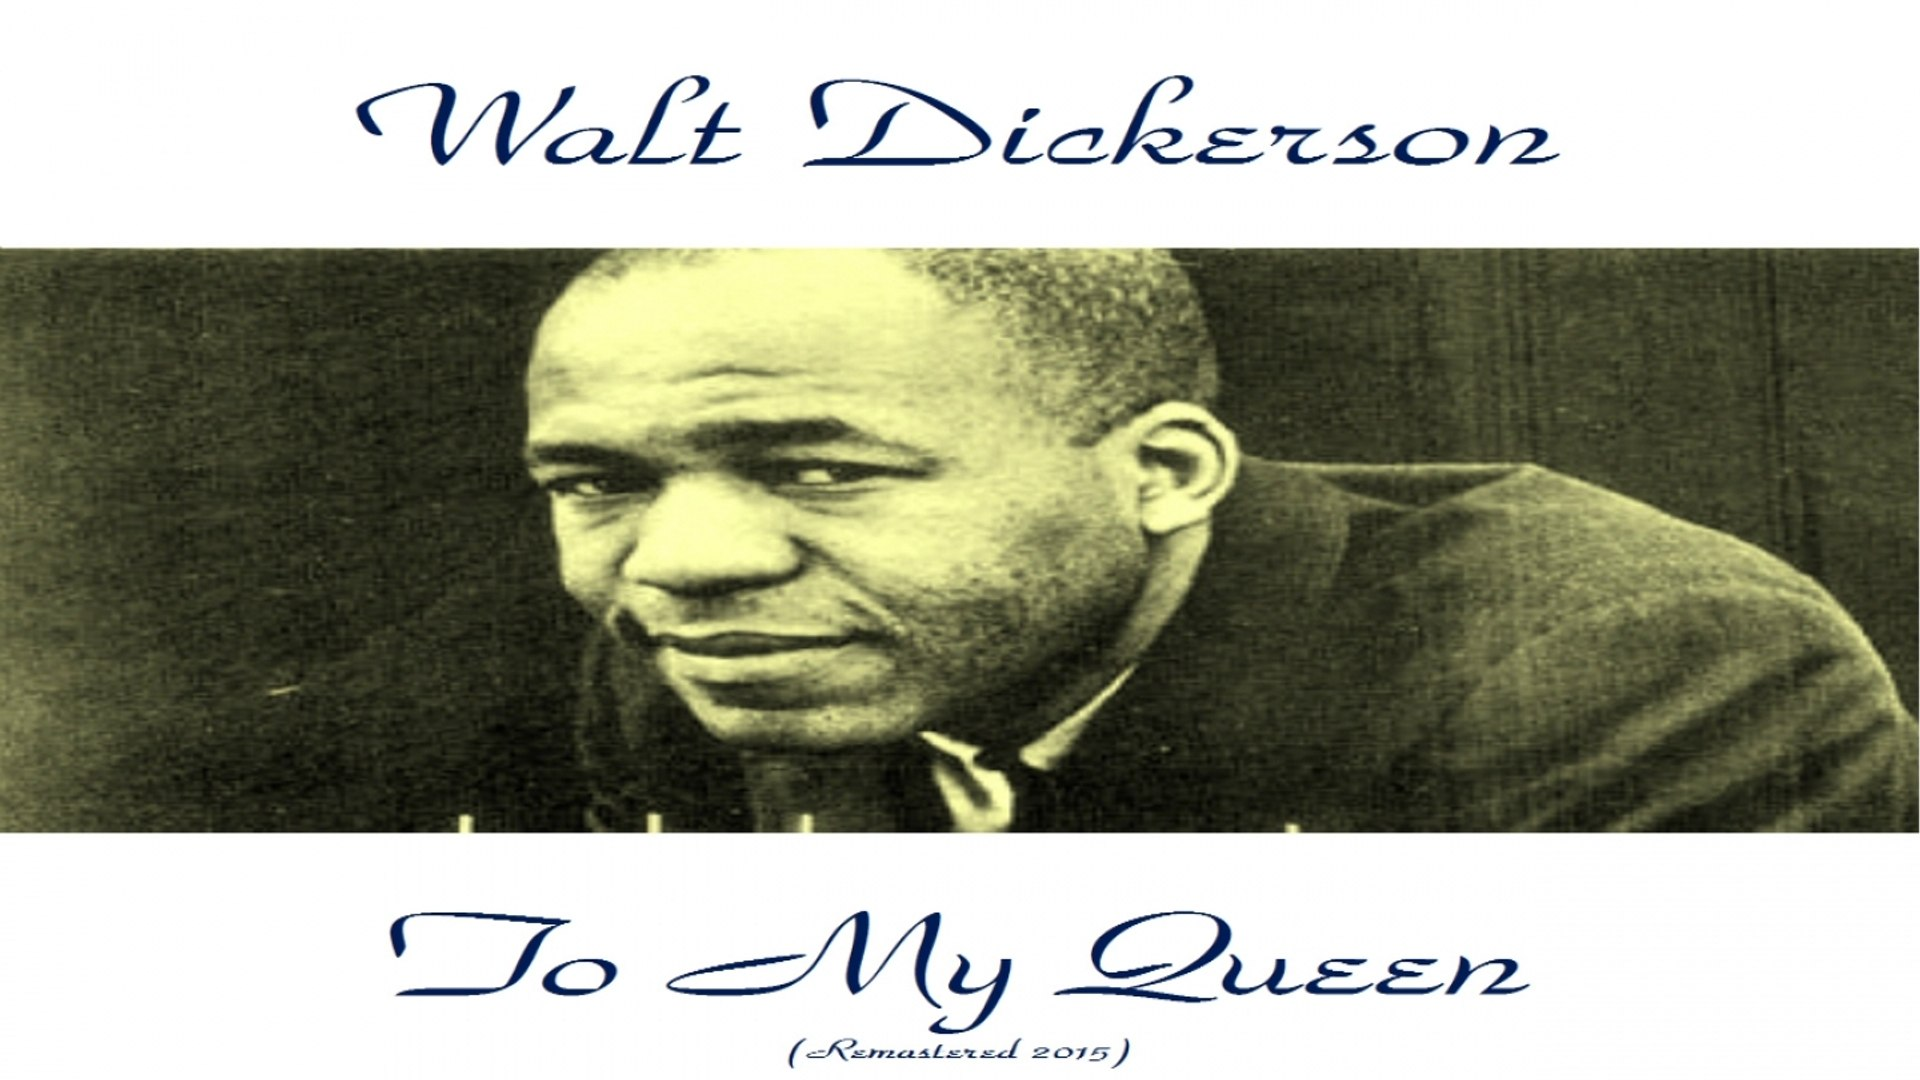 Walt Dickerson - To My Queen - Remastered 2015